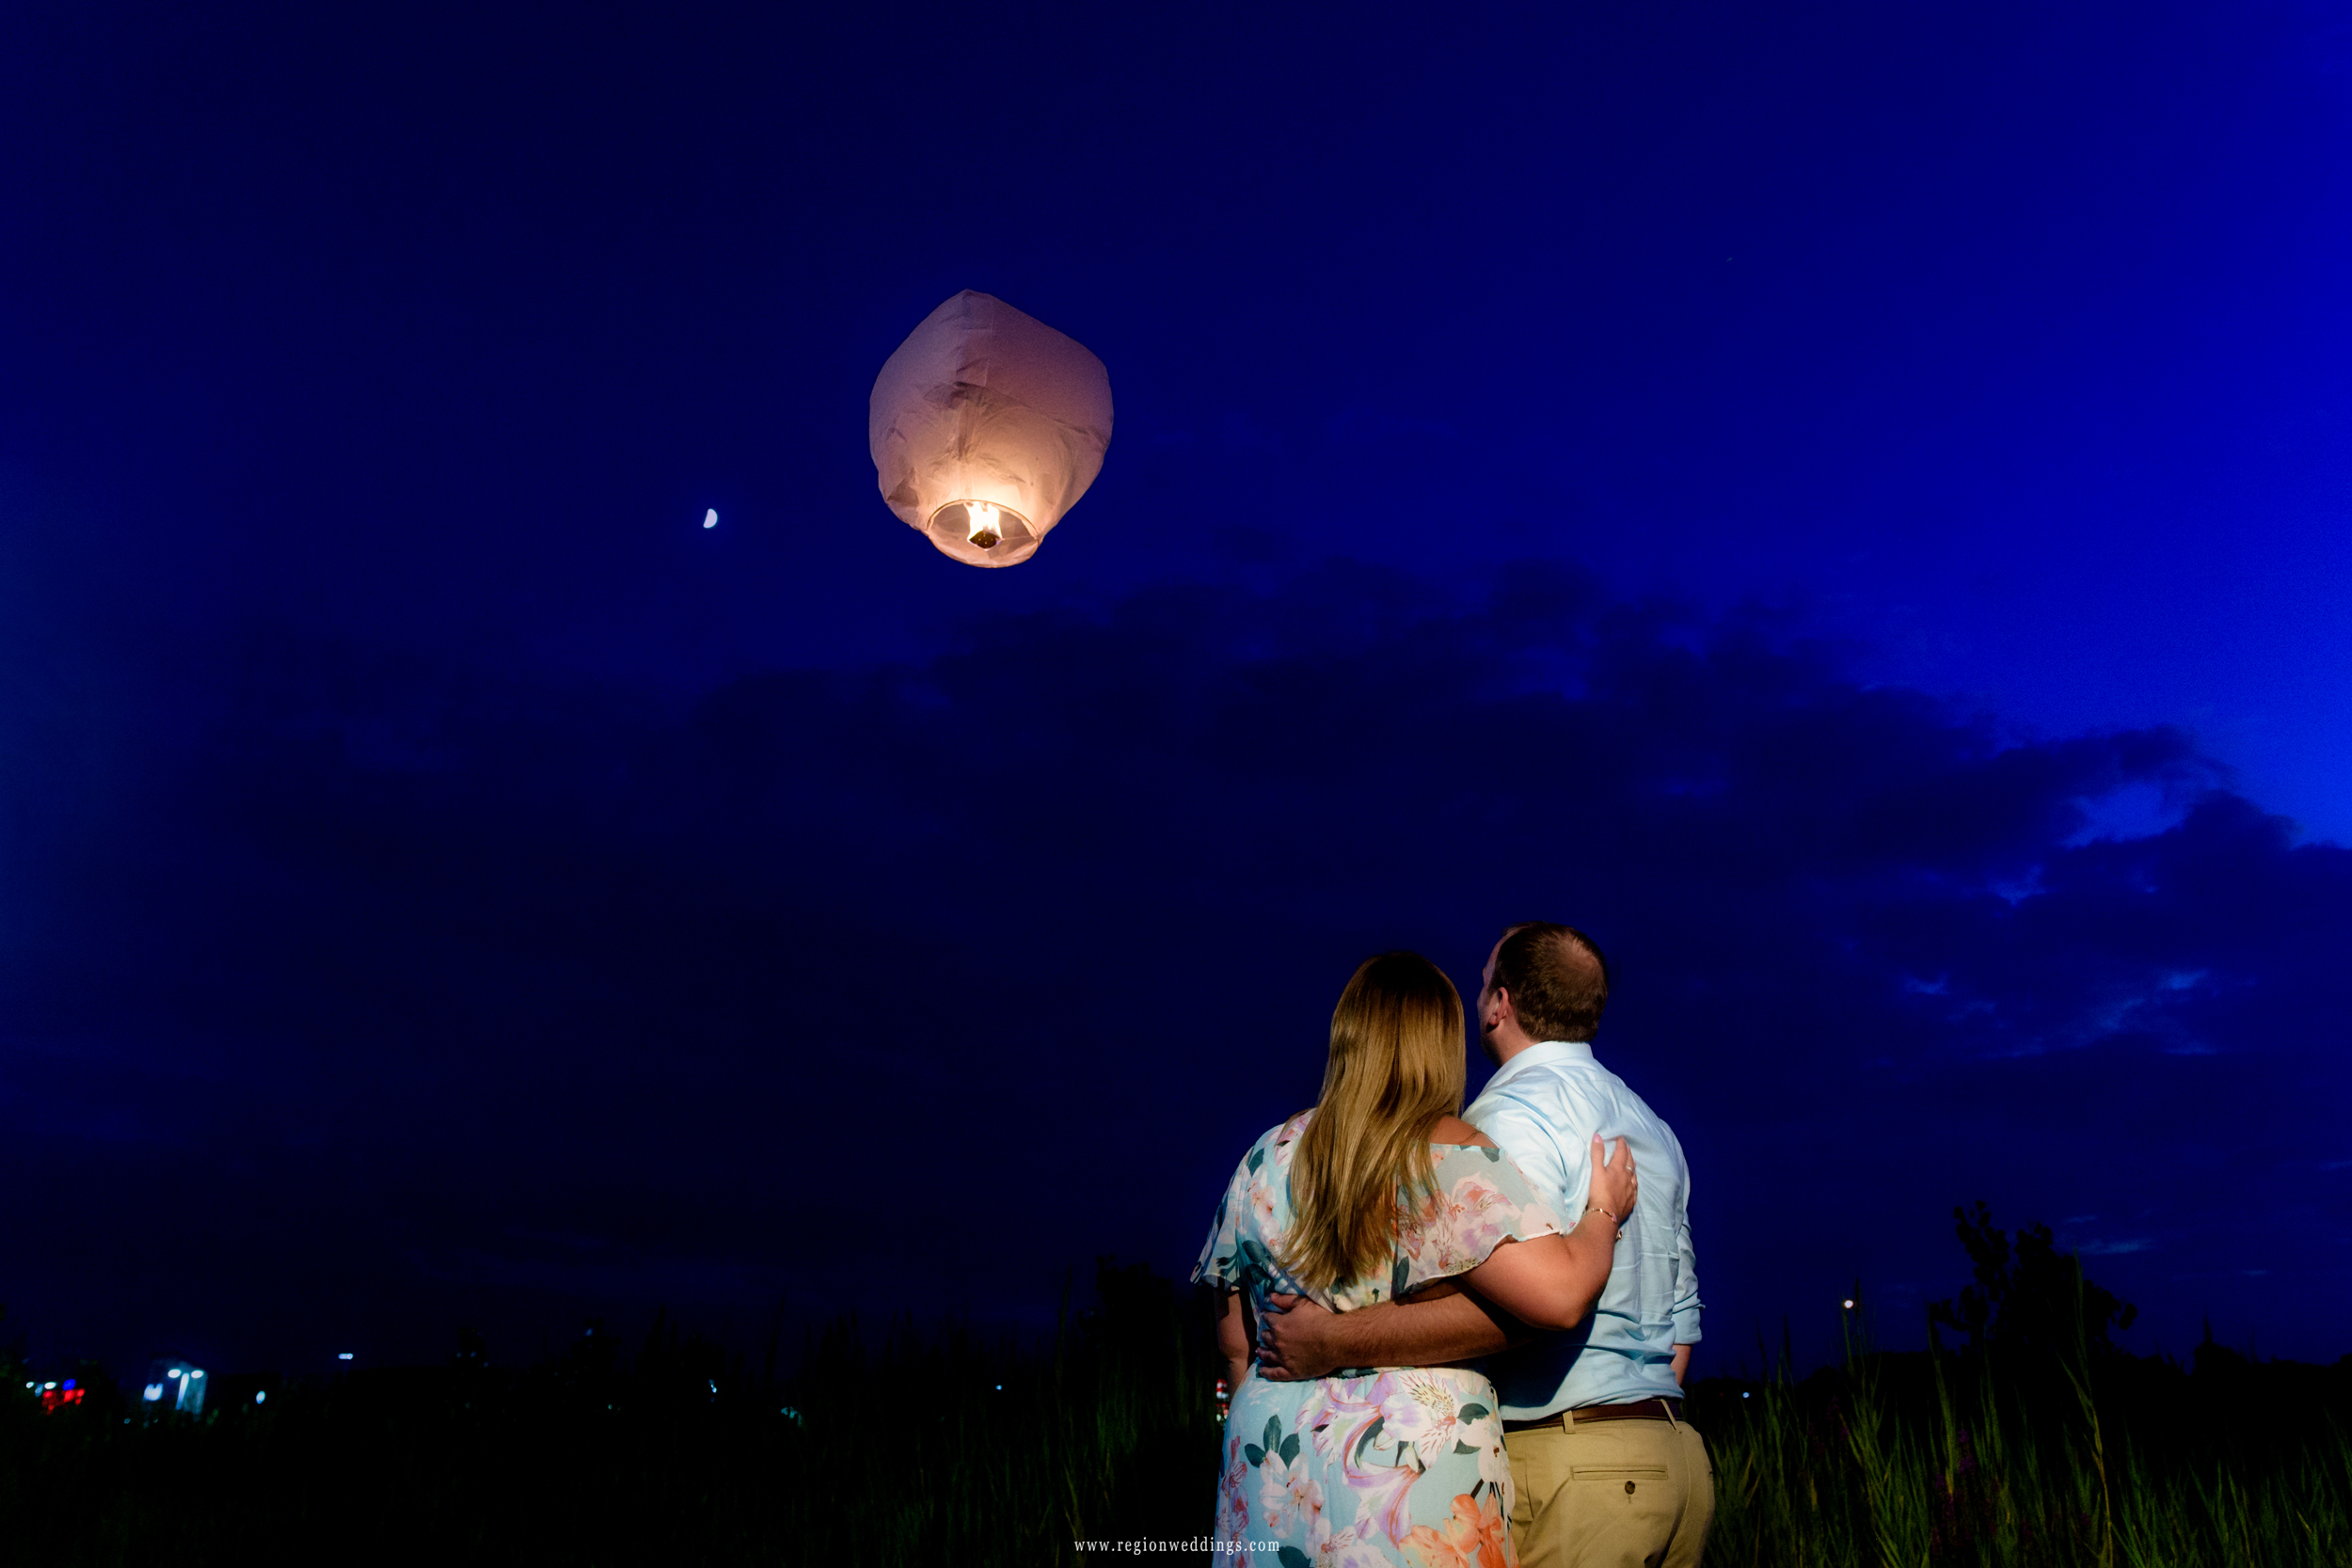 Watching a sky lantern drift off into the night sky for a twilight engagement photo.